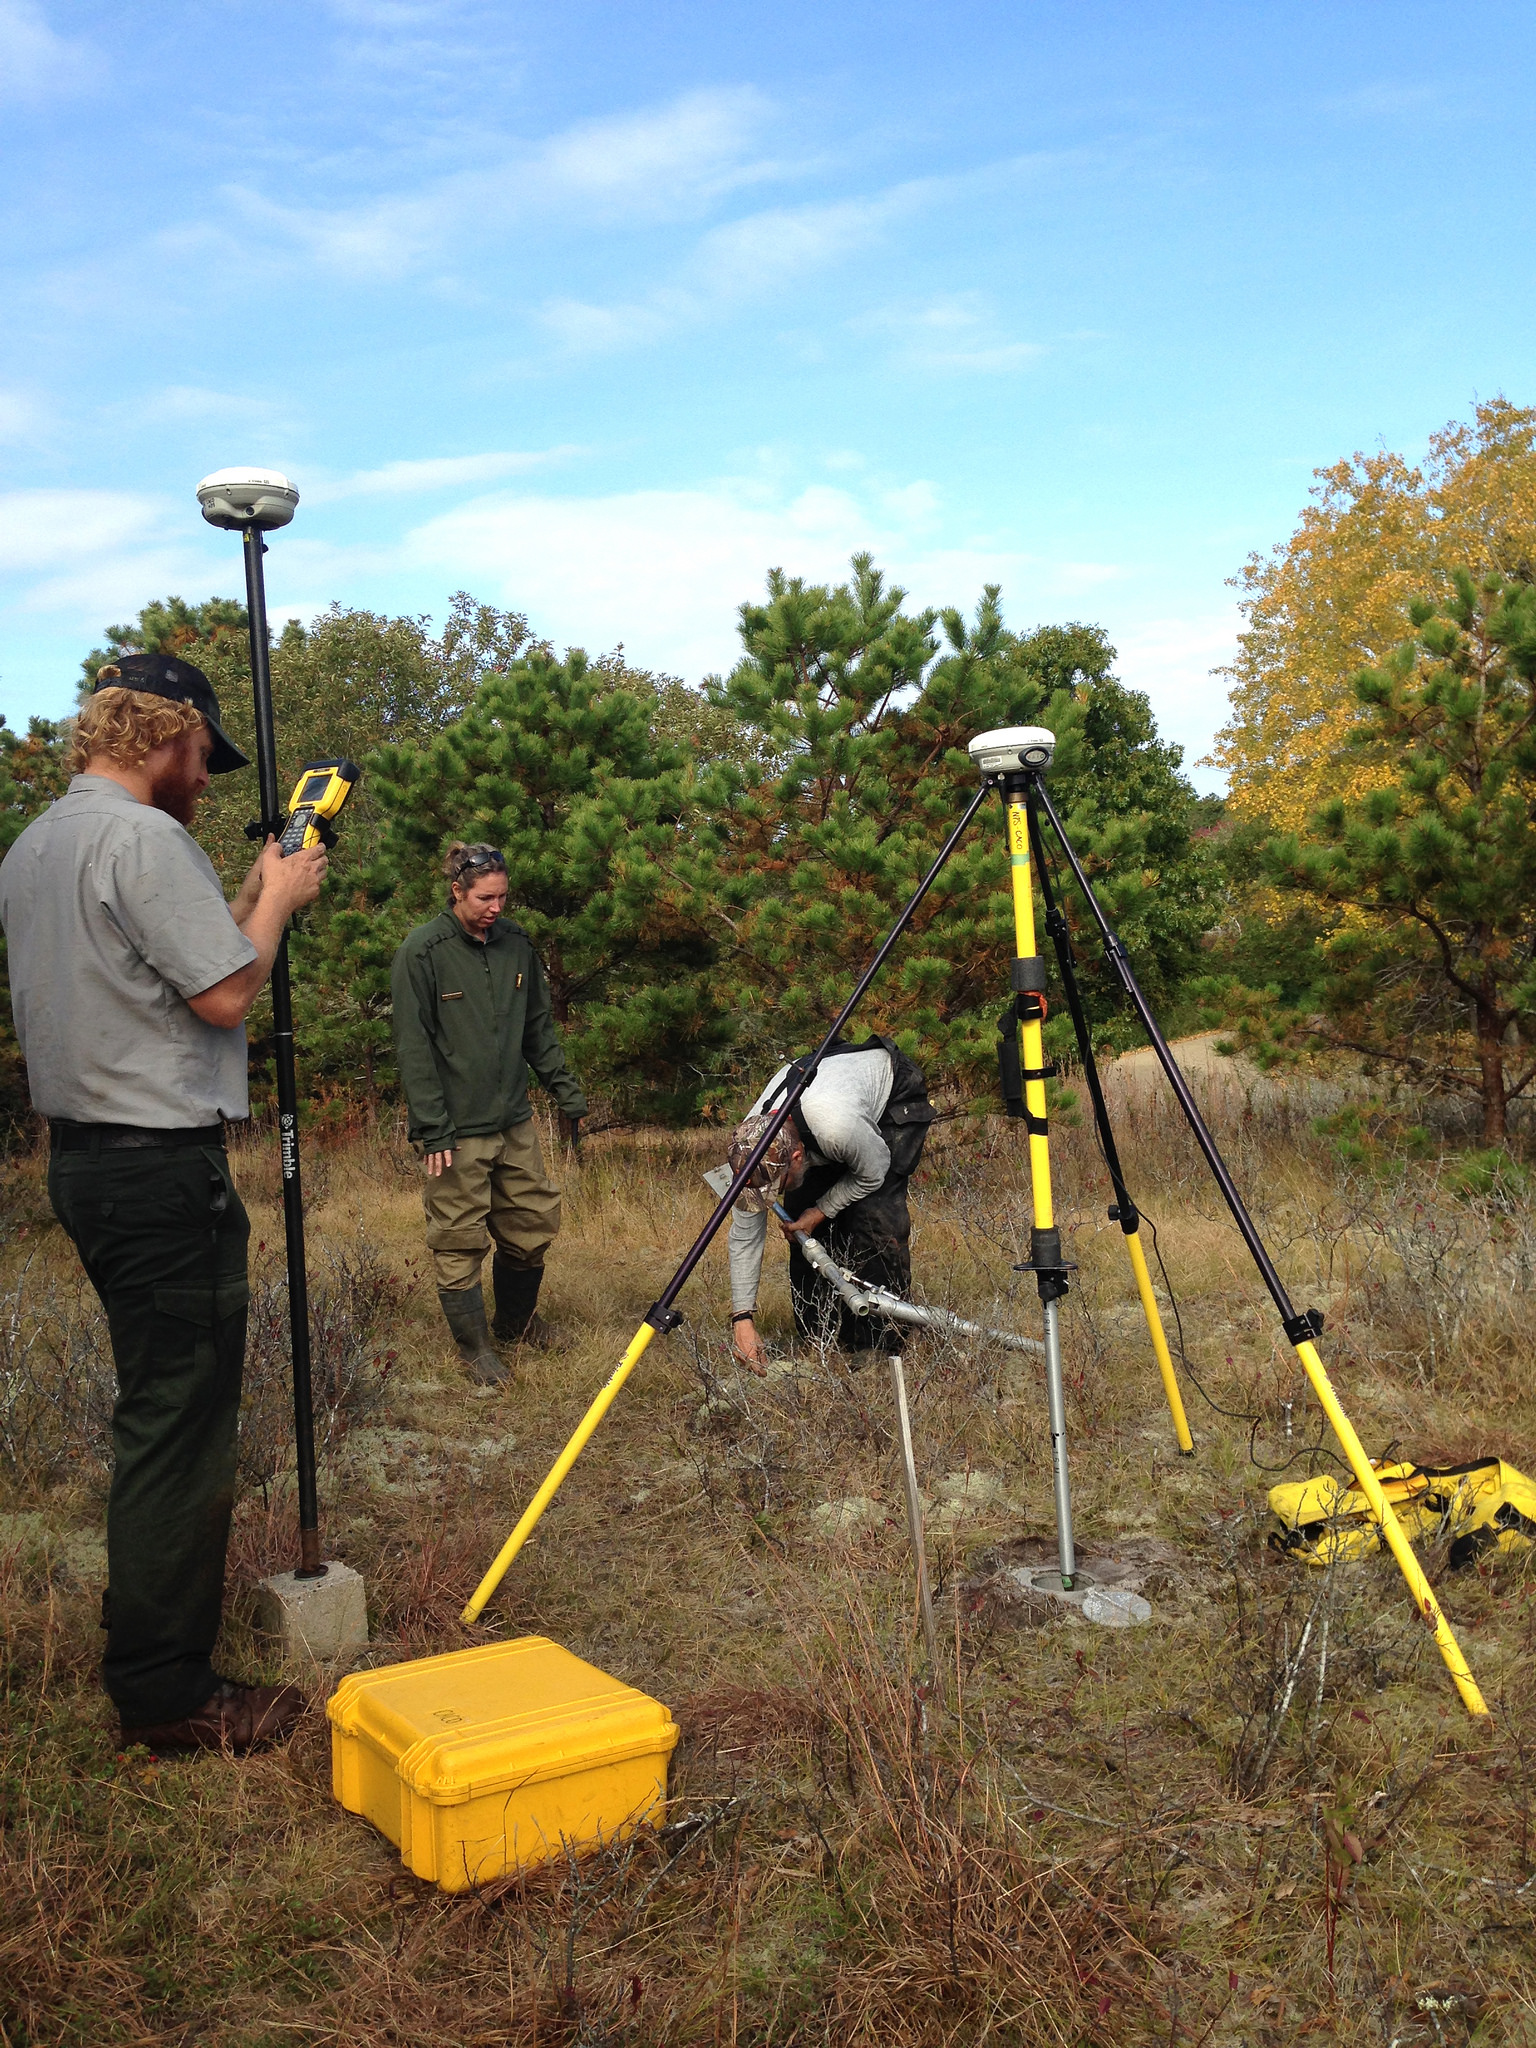 """A group of trained NPS technicians and scientists traditionally works together to consolidate all available resources, including expertise and equipment, and conduct intensive elevation surveys throughout NCBN parks. In this way, they expedite data collection in key areas of concern. They call themselves a """"GPS SWAT Team."""" NPS photo/D.Filippini."""